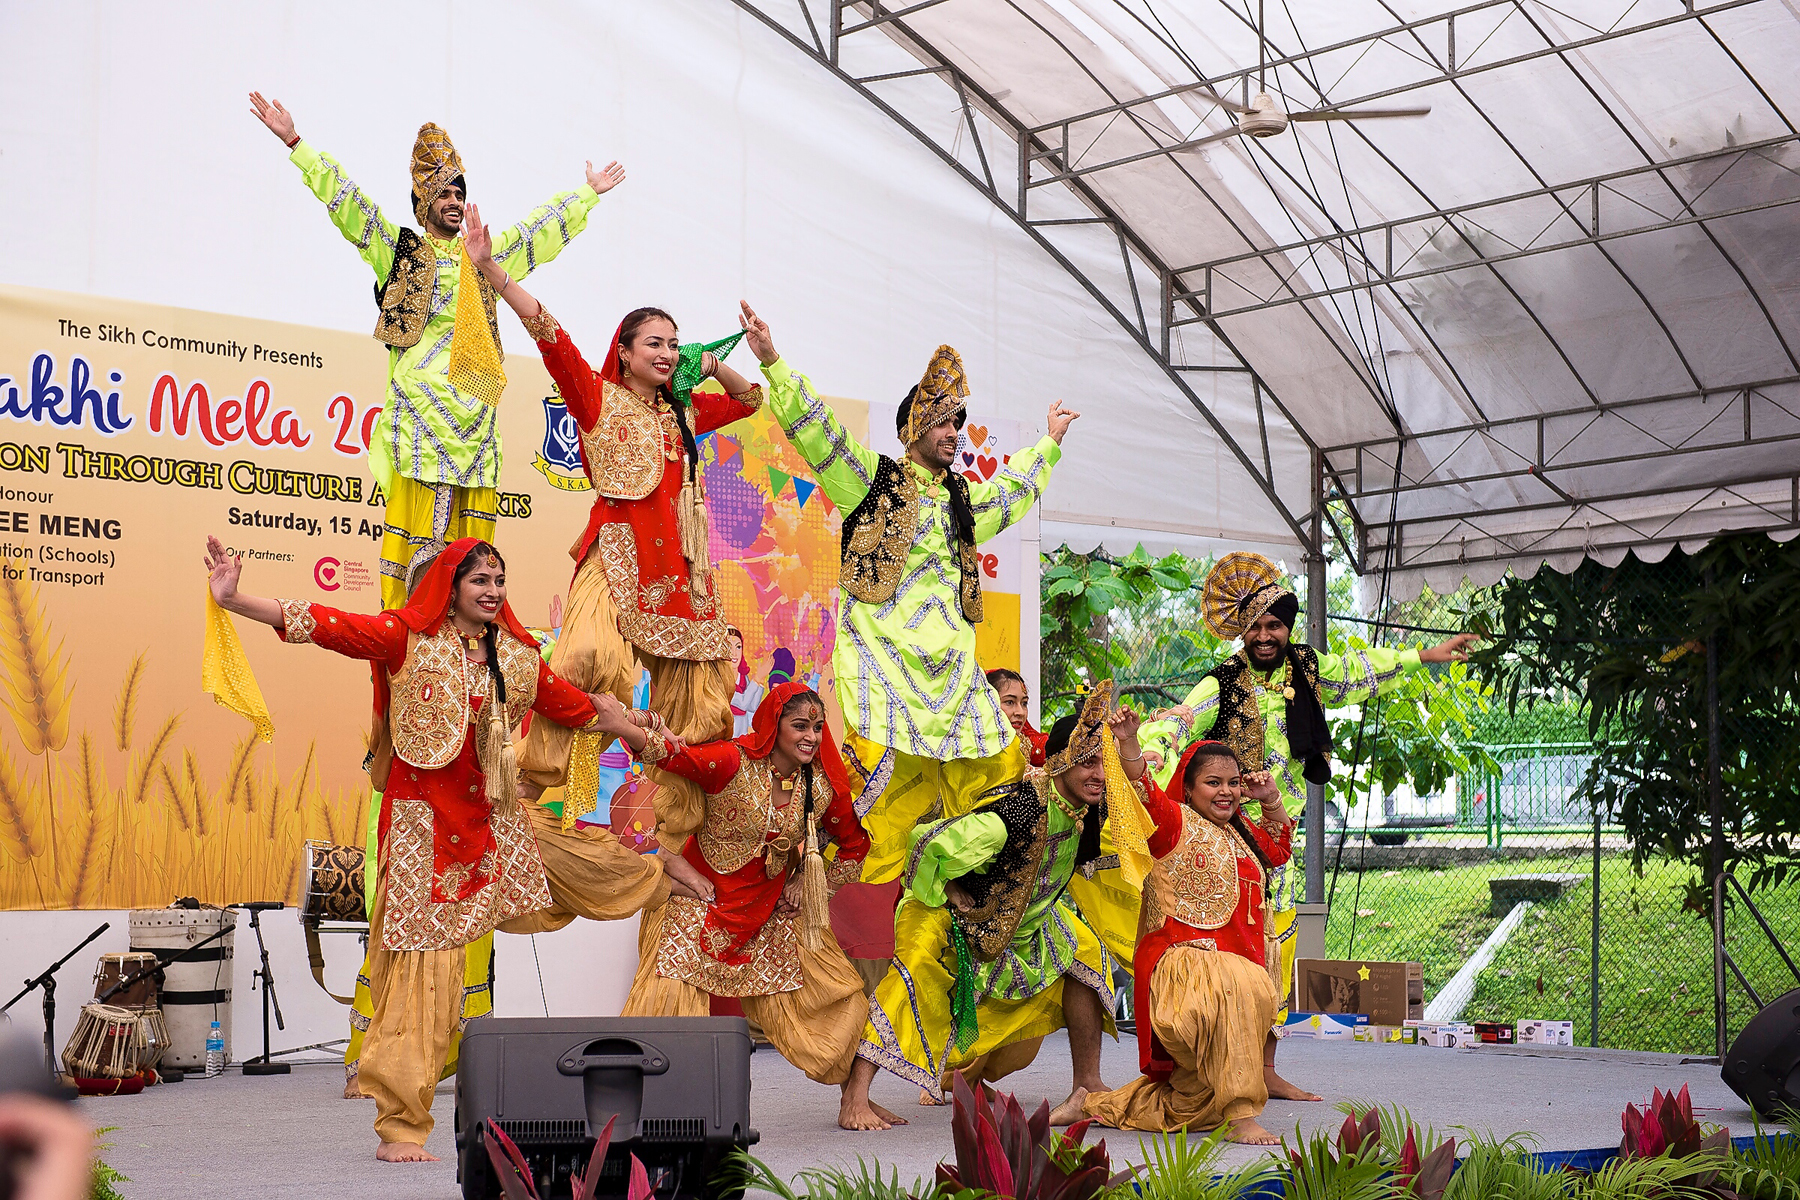 Cultural festivities such a bhangra performace are a prominent feature of the Baisakhi mela. Photo courtesy: SKA